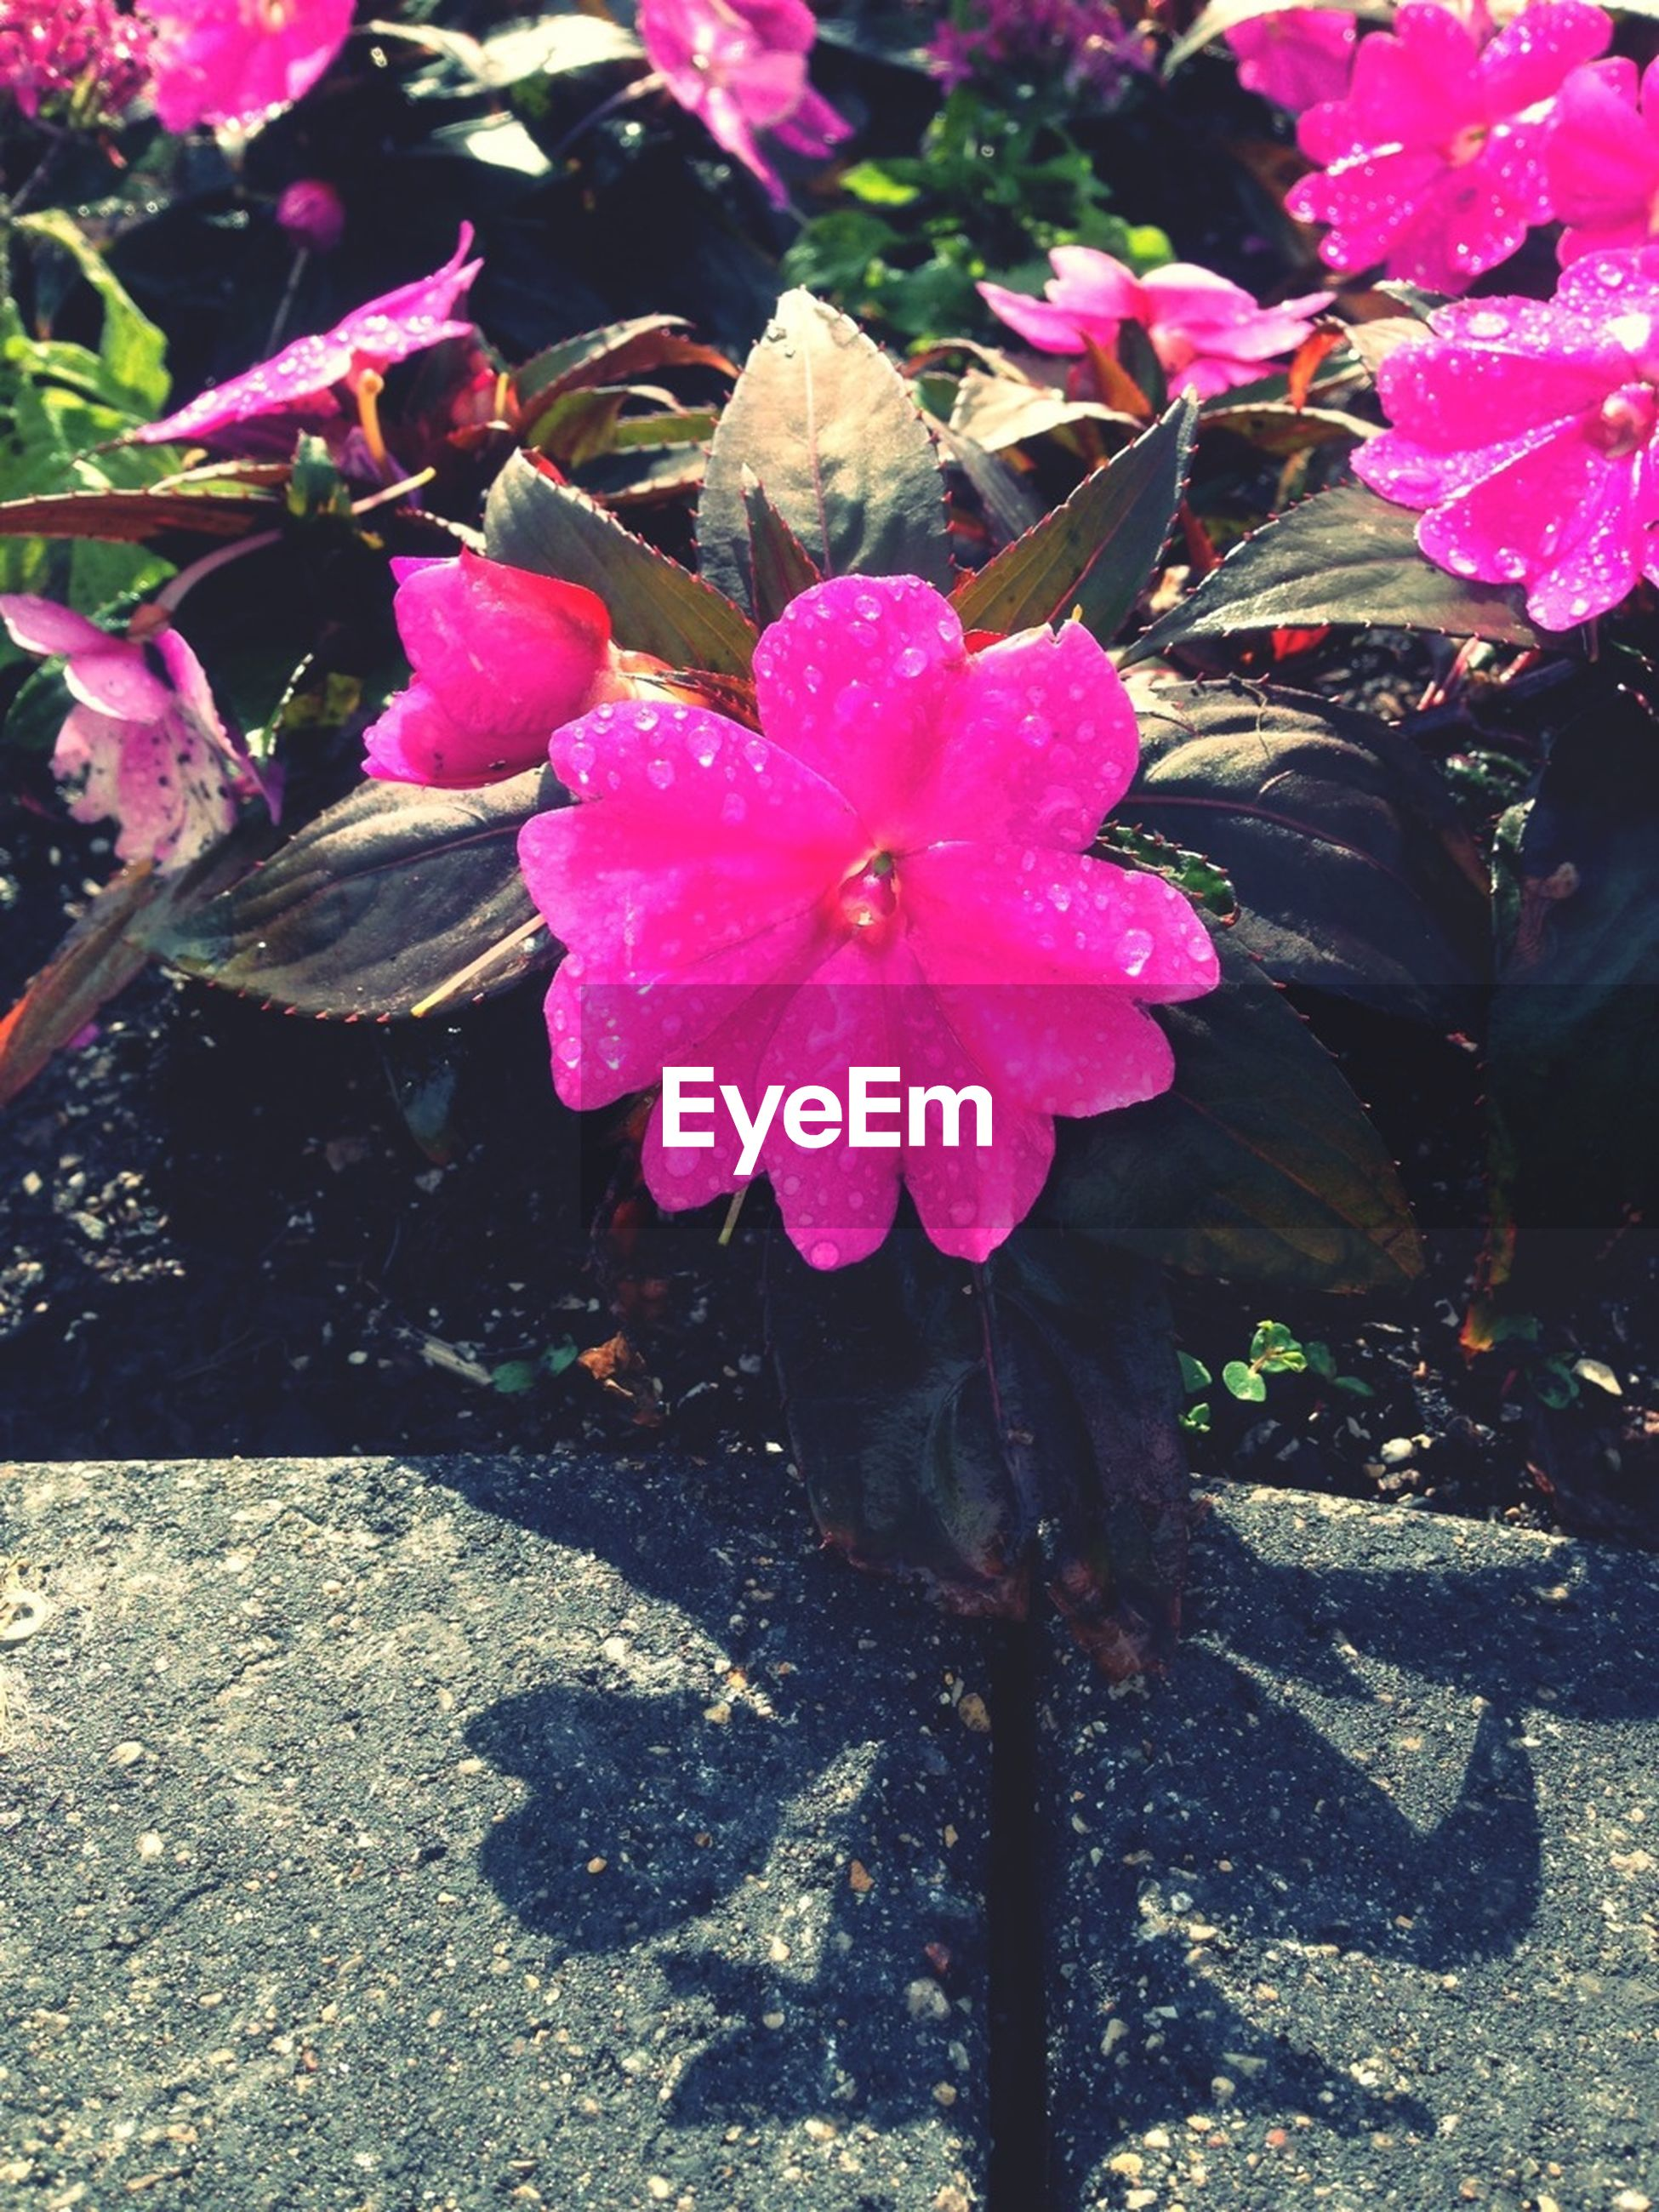 flower, pink color, freshness, growth, petal, fragility, high angle view, beauty in nature, nature, plant, blooming, outdoors, leaf, flower head, day, pink, park - man made space, in bloom, sunlight, close-up